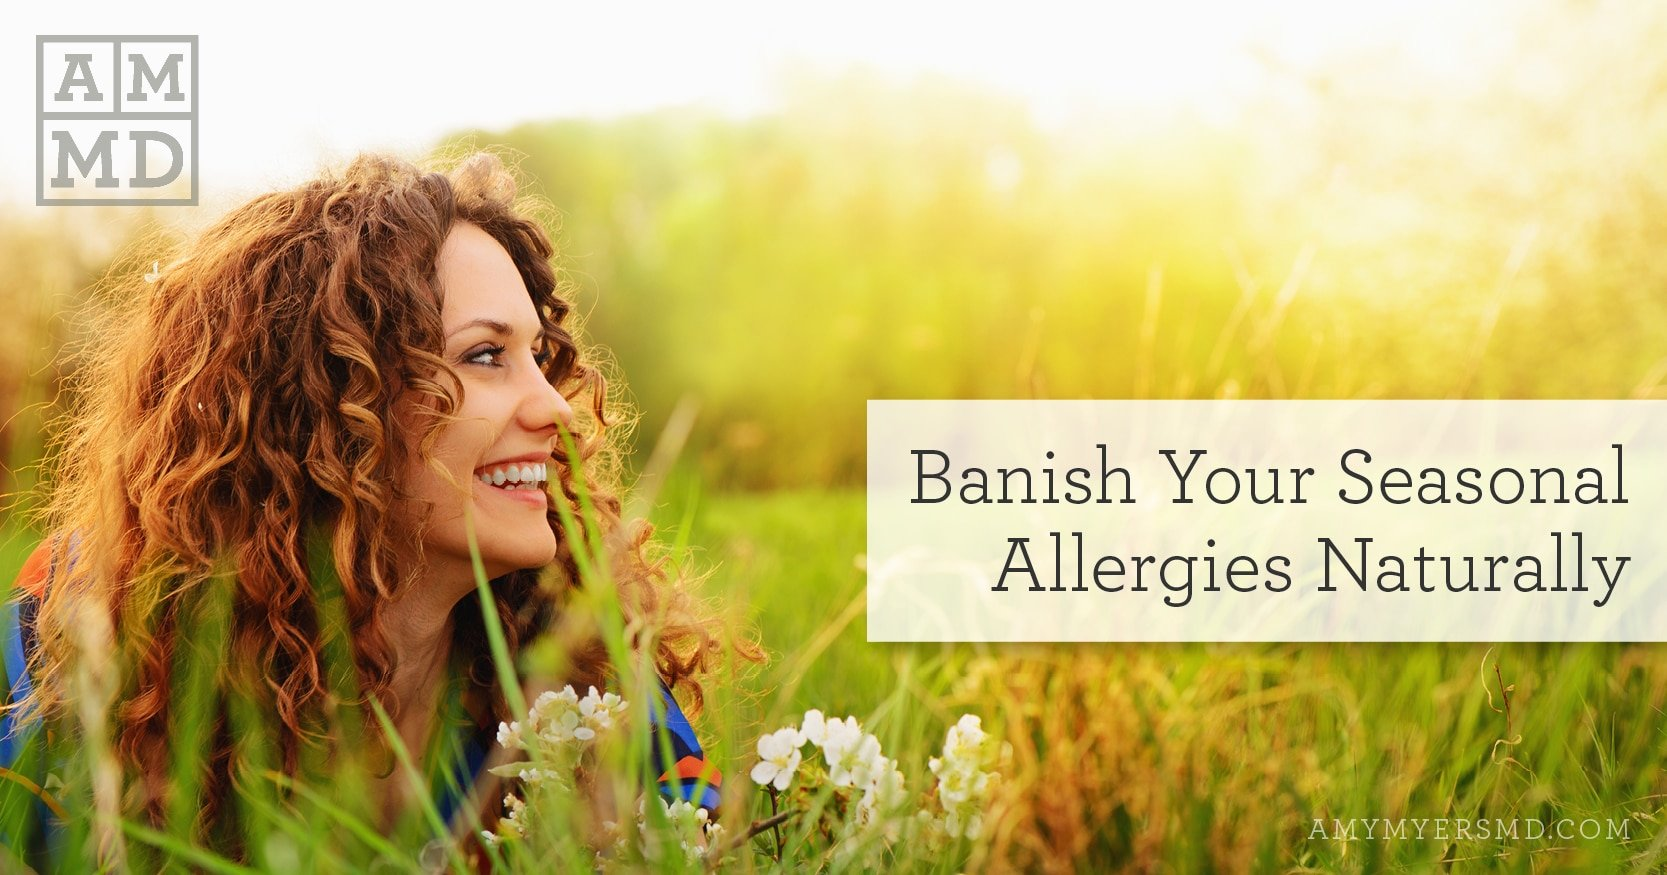 Treat Your Seasonal Allergies Naturally - A Woman Enjoying a Grassy Meadow - Featured Image - Amy Myers MD